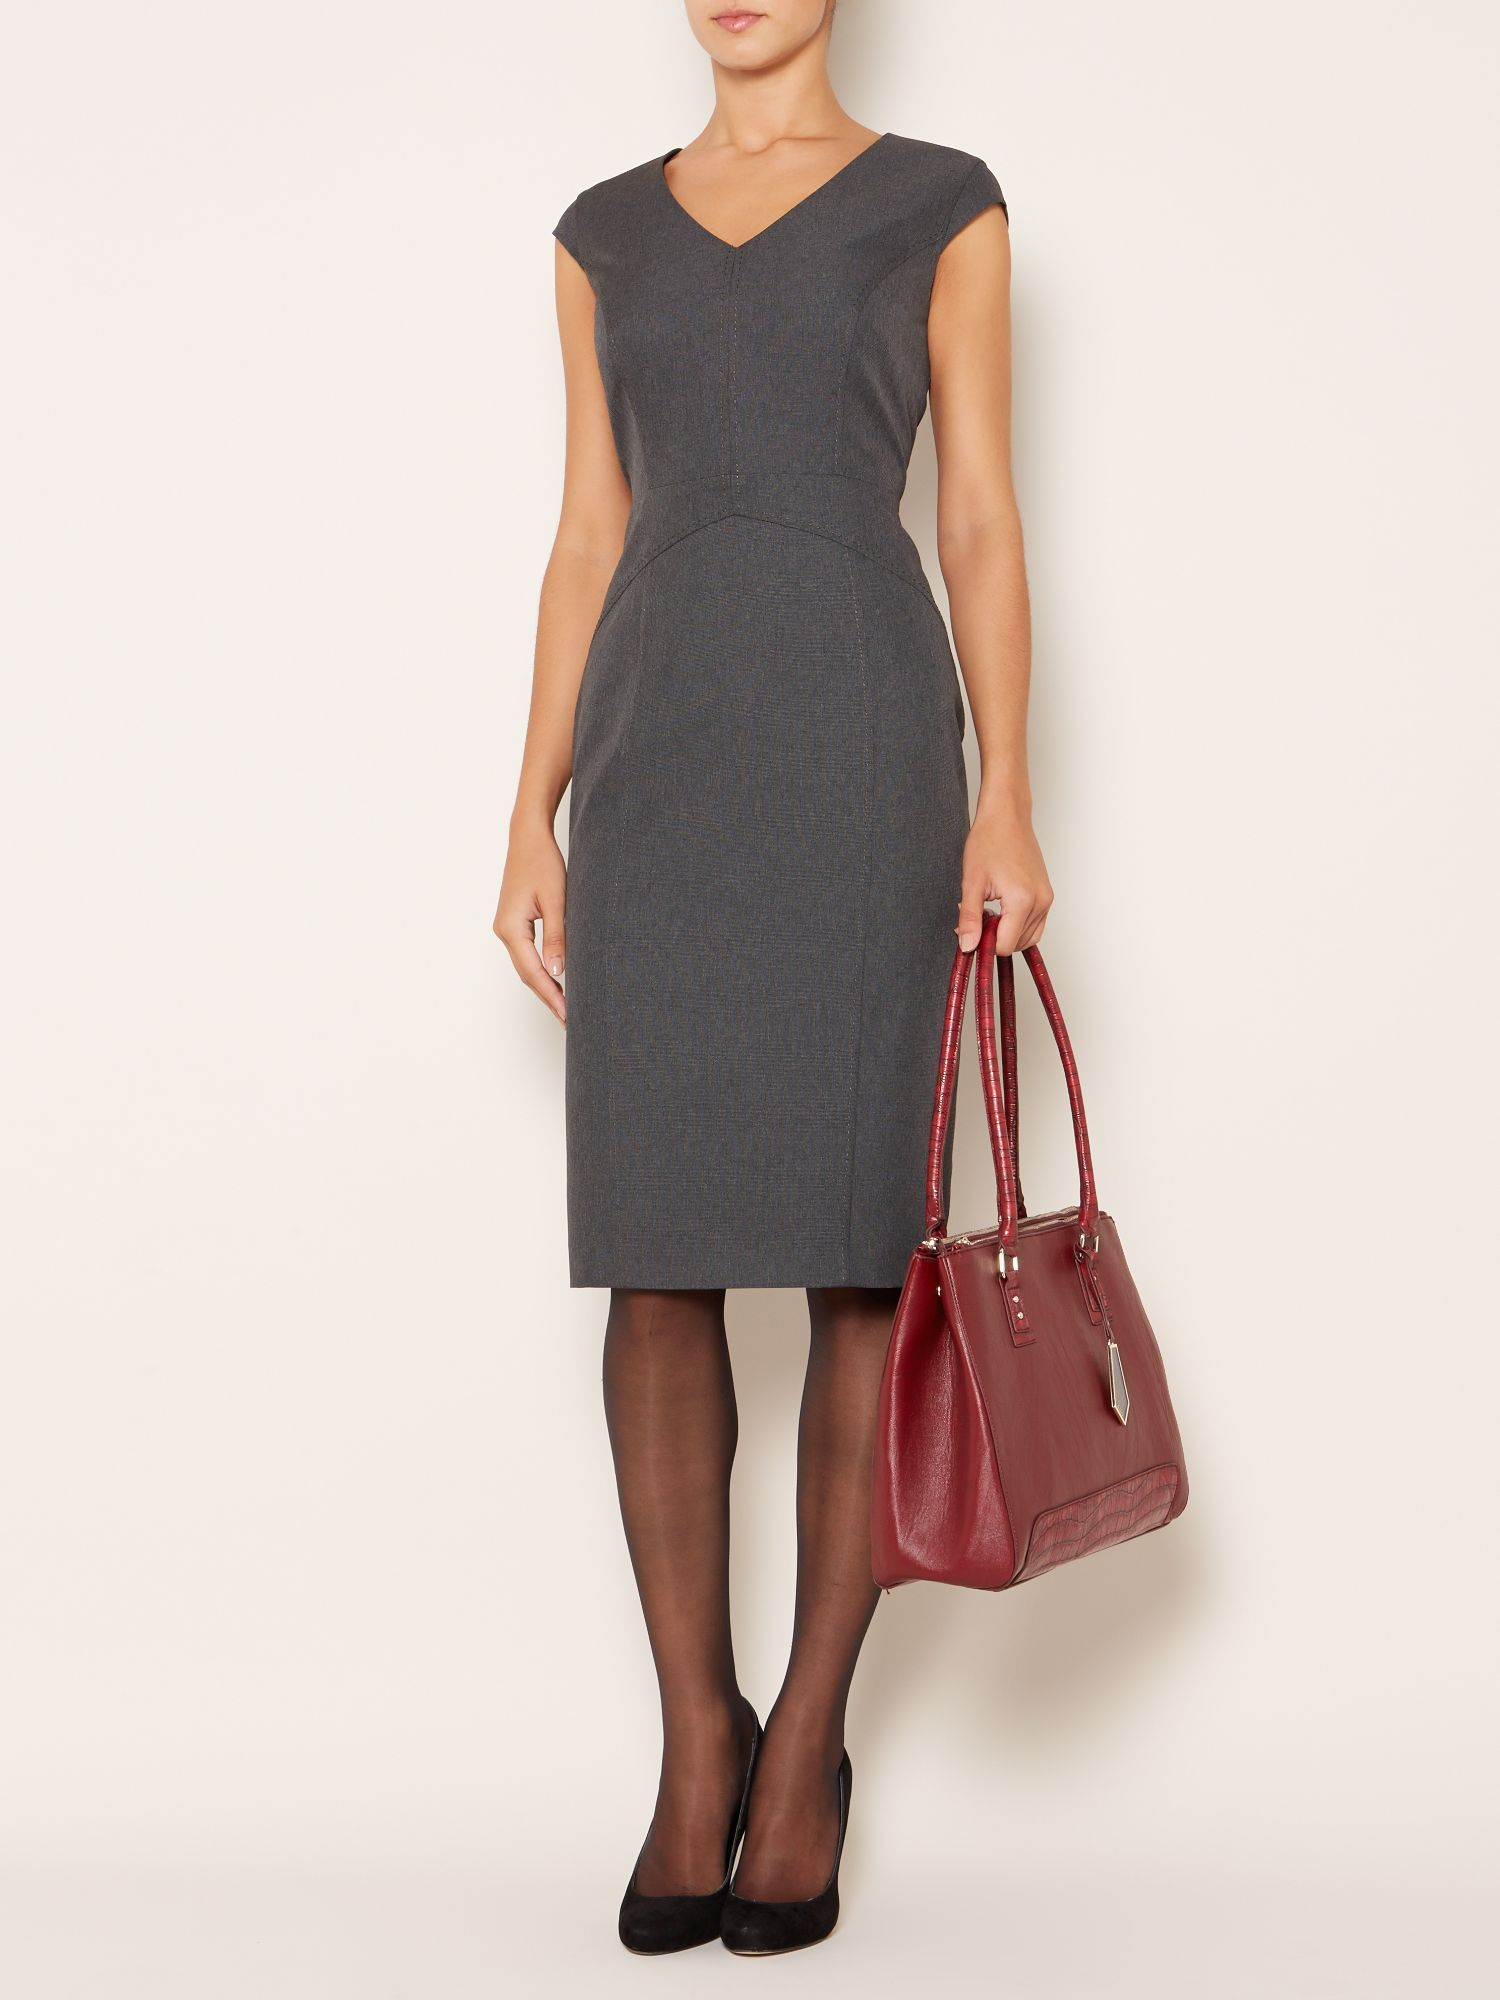 Scoop Neck Collar Below The Knee Charcoal Dress